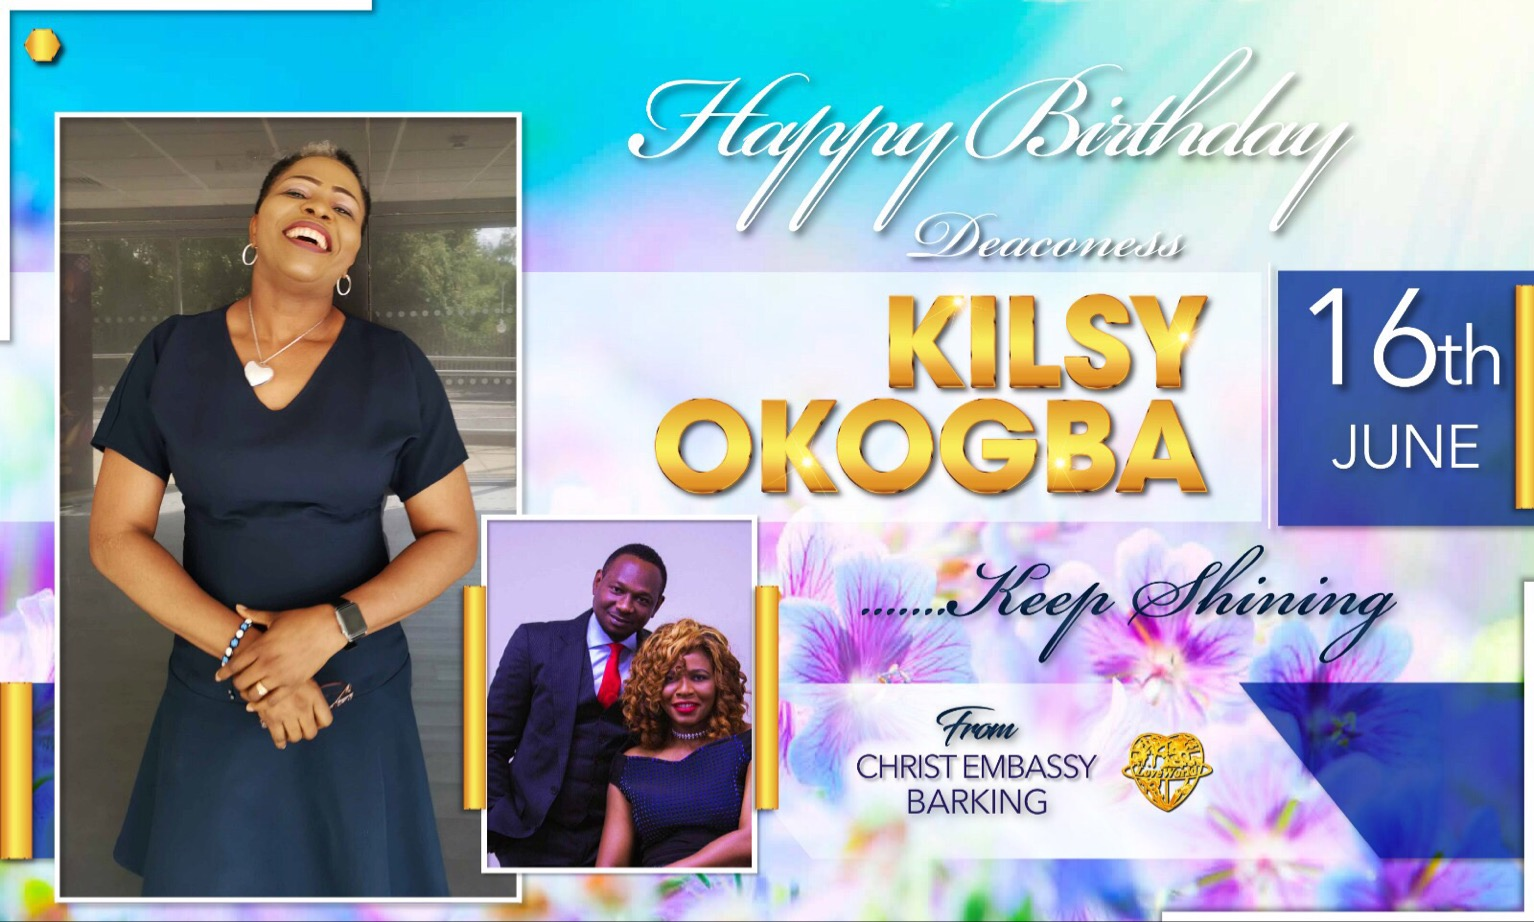 Happy birthday Dcns Kilsy Okogba